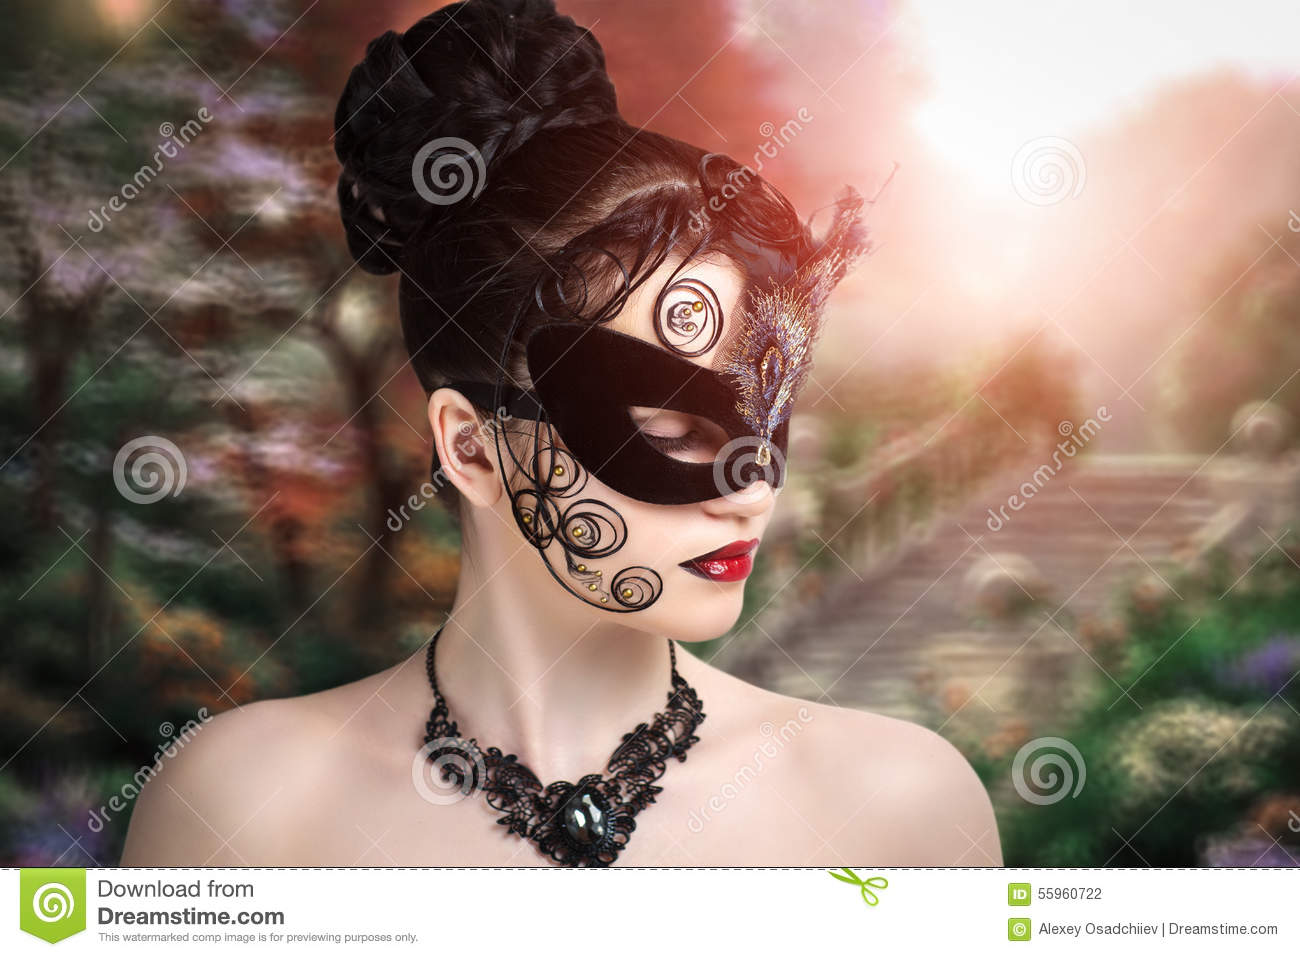 Queen Of Hearts Hairstyles: Perfect Woman Stock Photo. Image Of Female, Concert, Hair